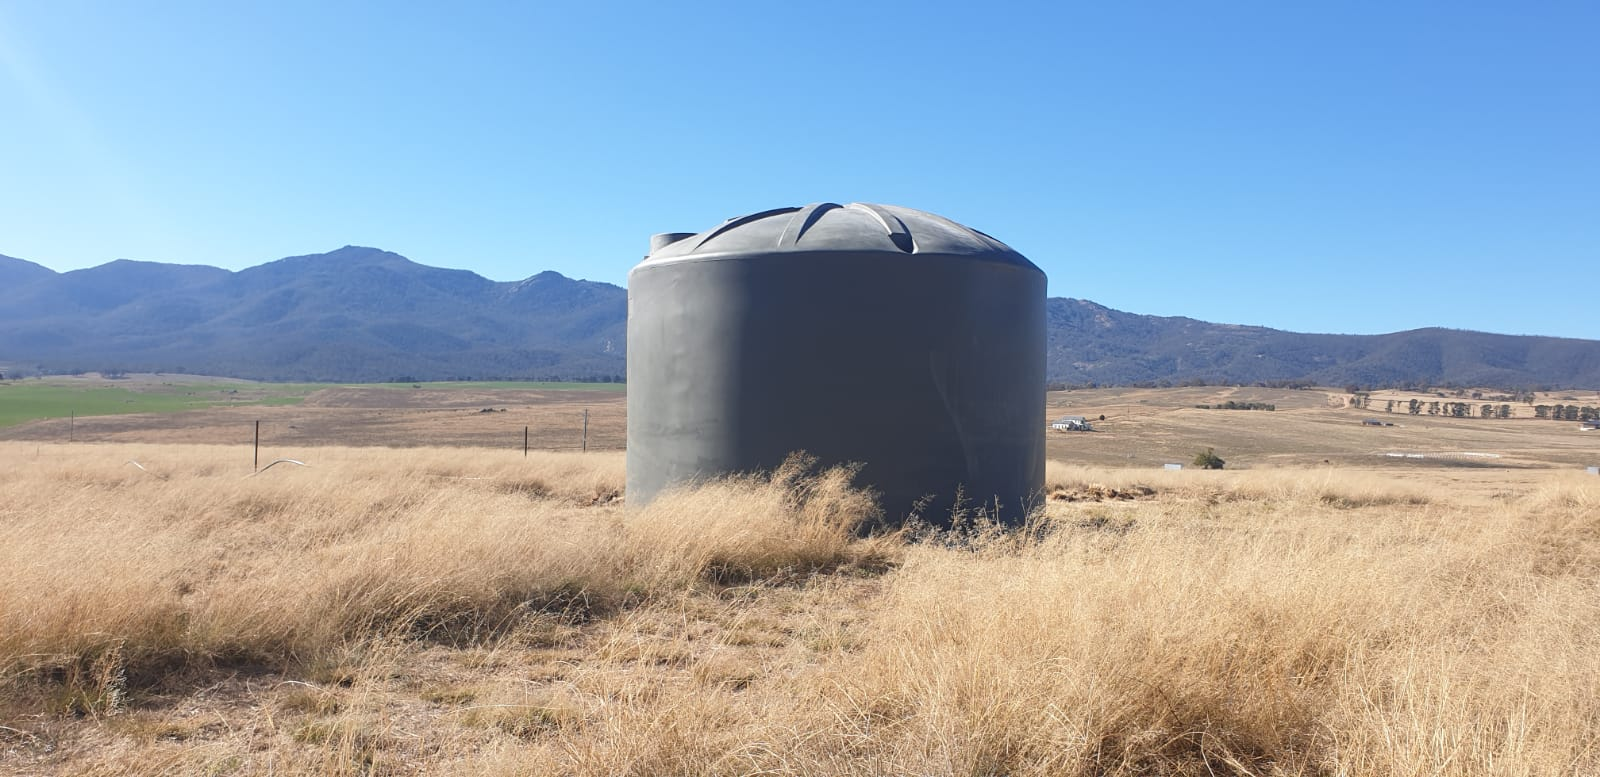 Rainwater Tanks for water conservation are a great tool on rural properties like this one